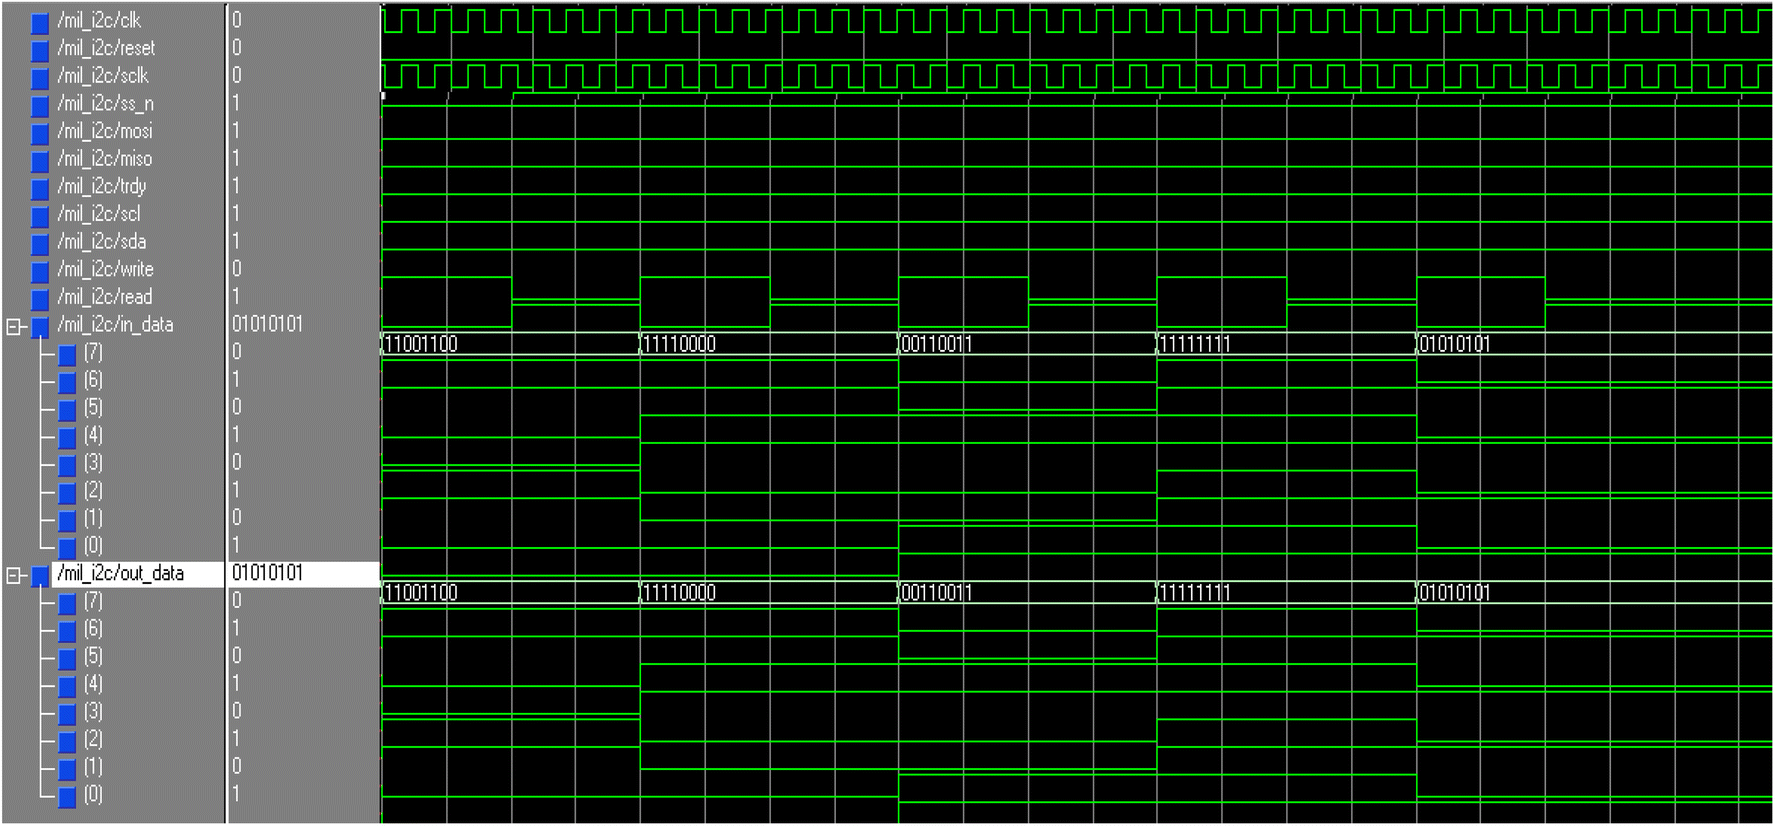 Design and implementation of I2C interface on FPGA for space